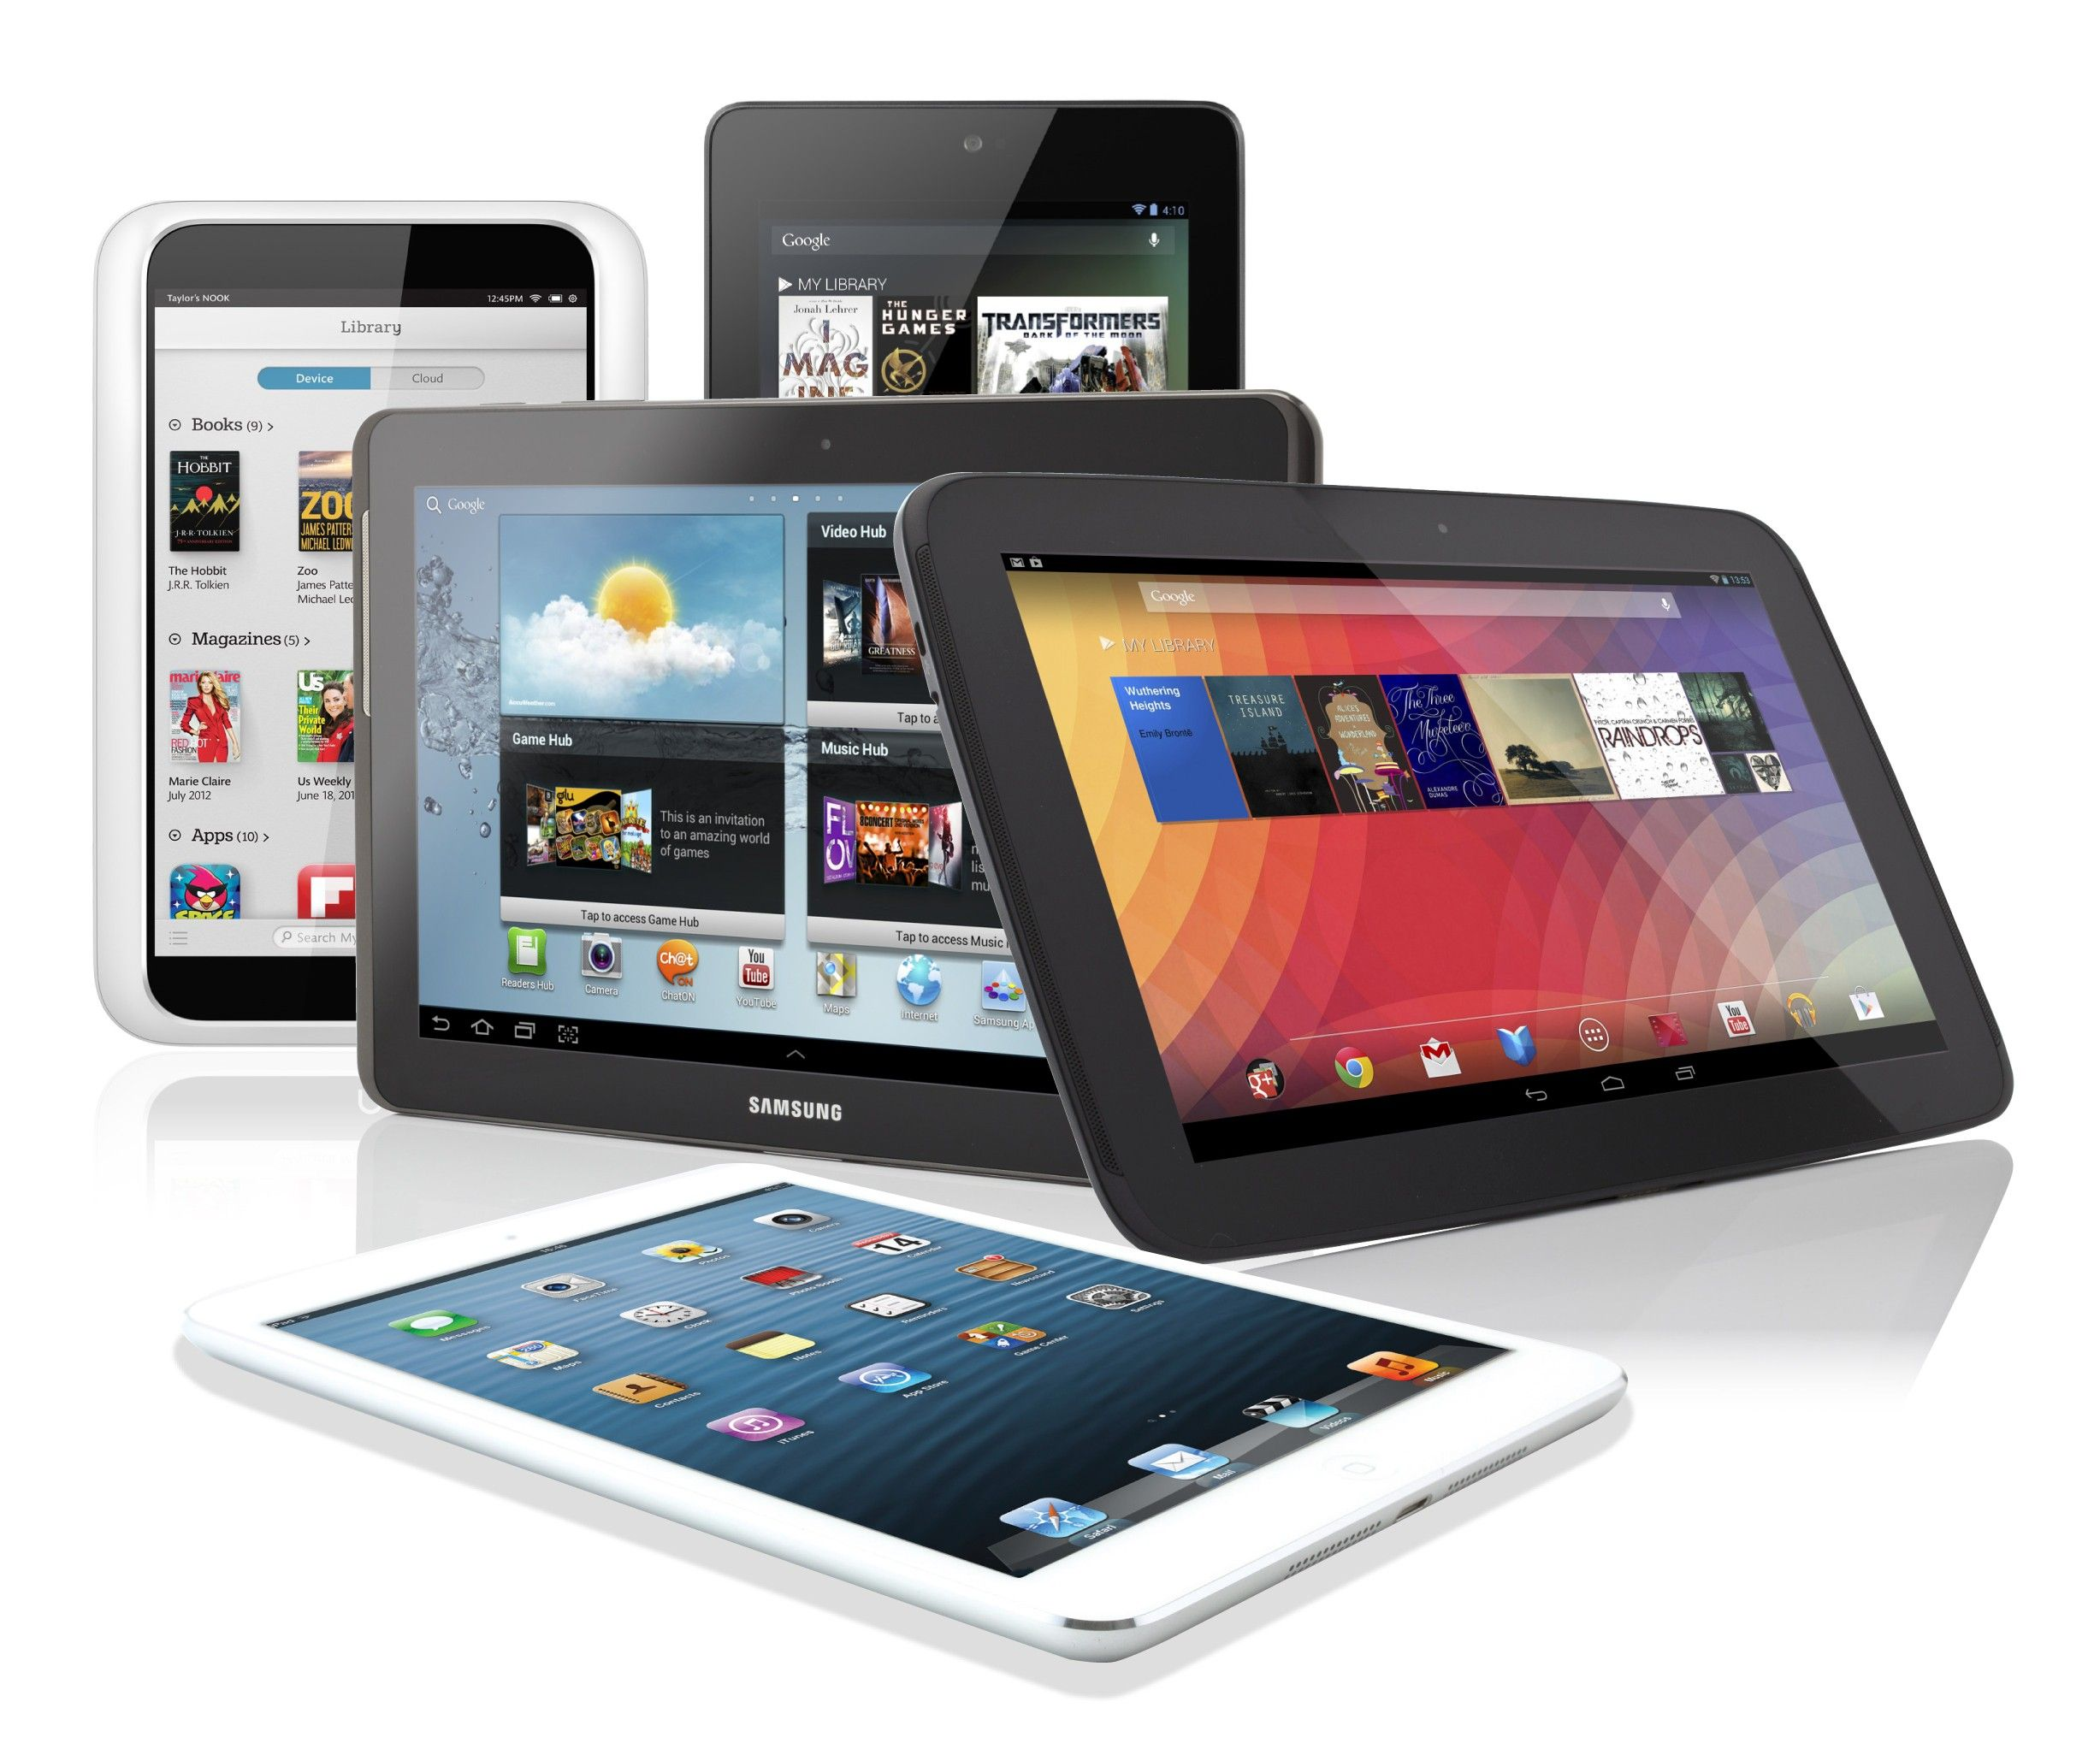 tablet buying guide summer 2013 pinterest tech tablet tablet rh pinterest co uk Microsoft Tablet PC Google Tablet PC